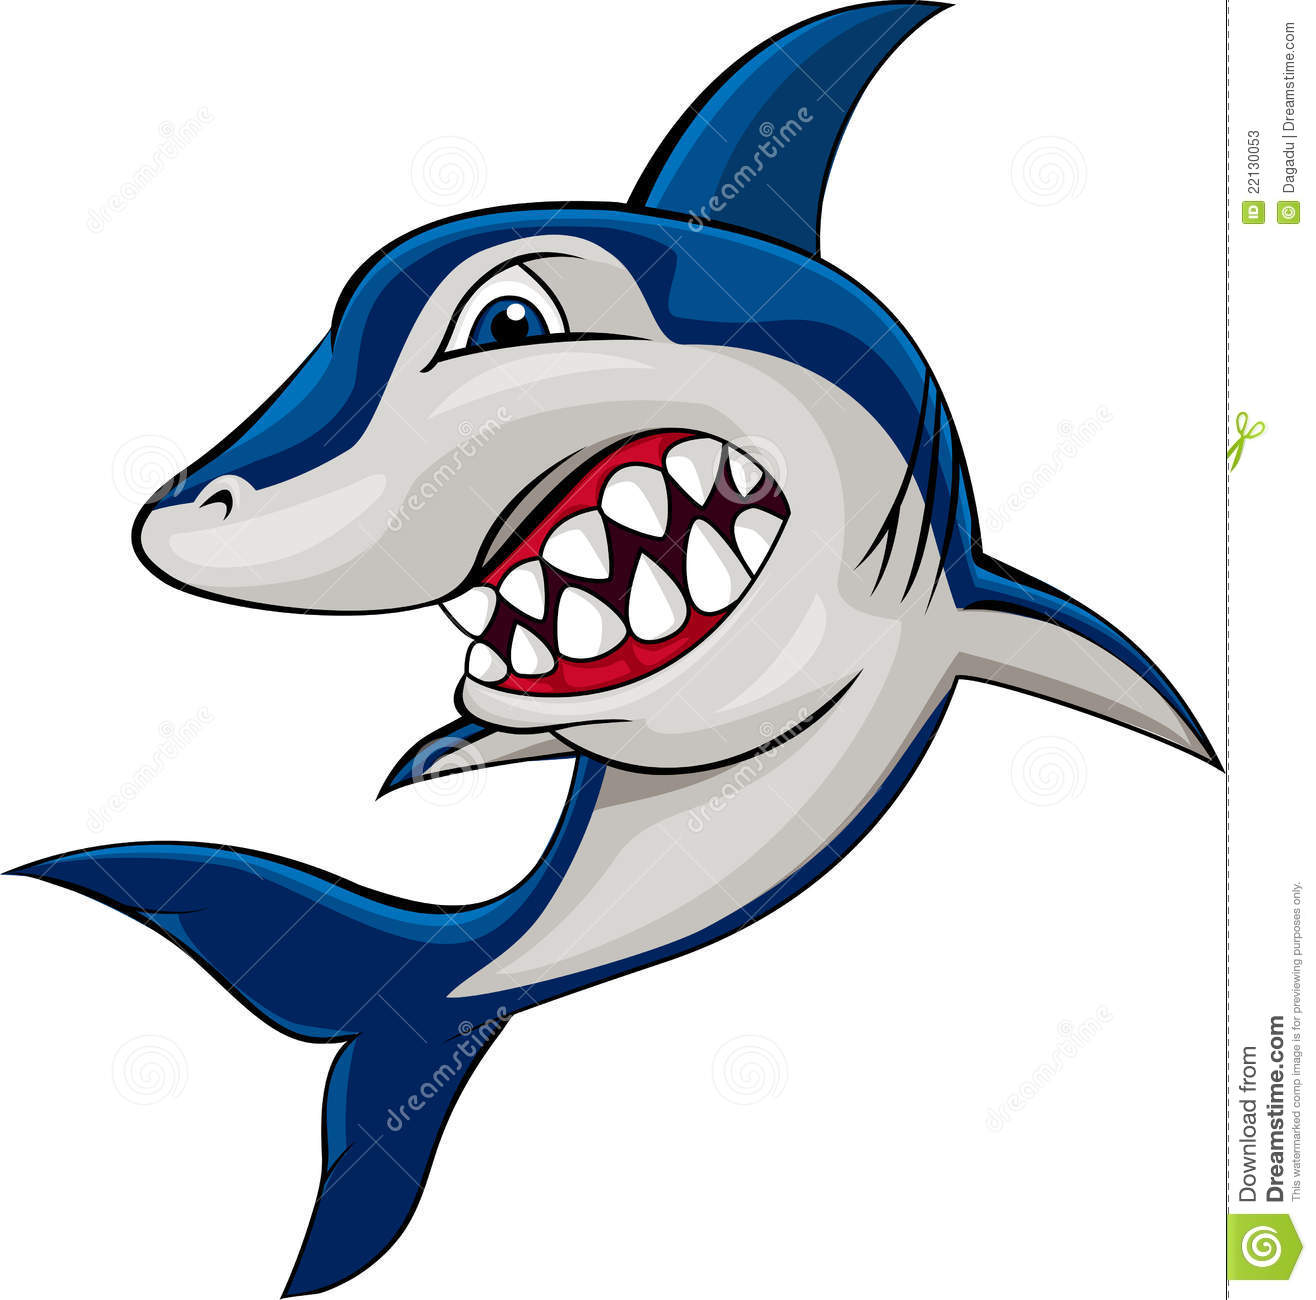 Shark clipart #6, Download drawings